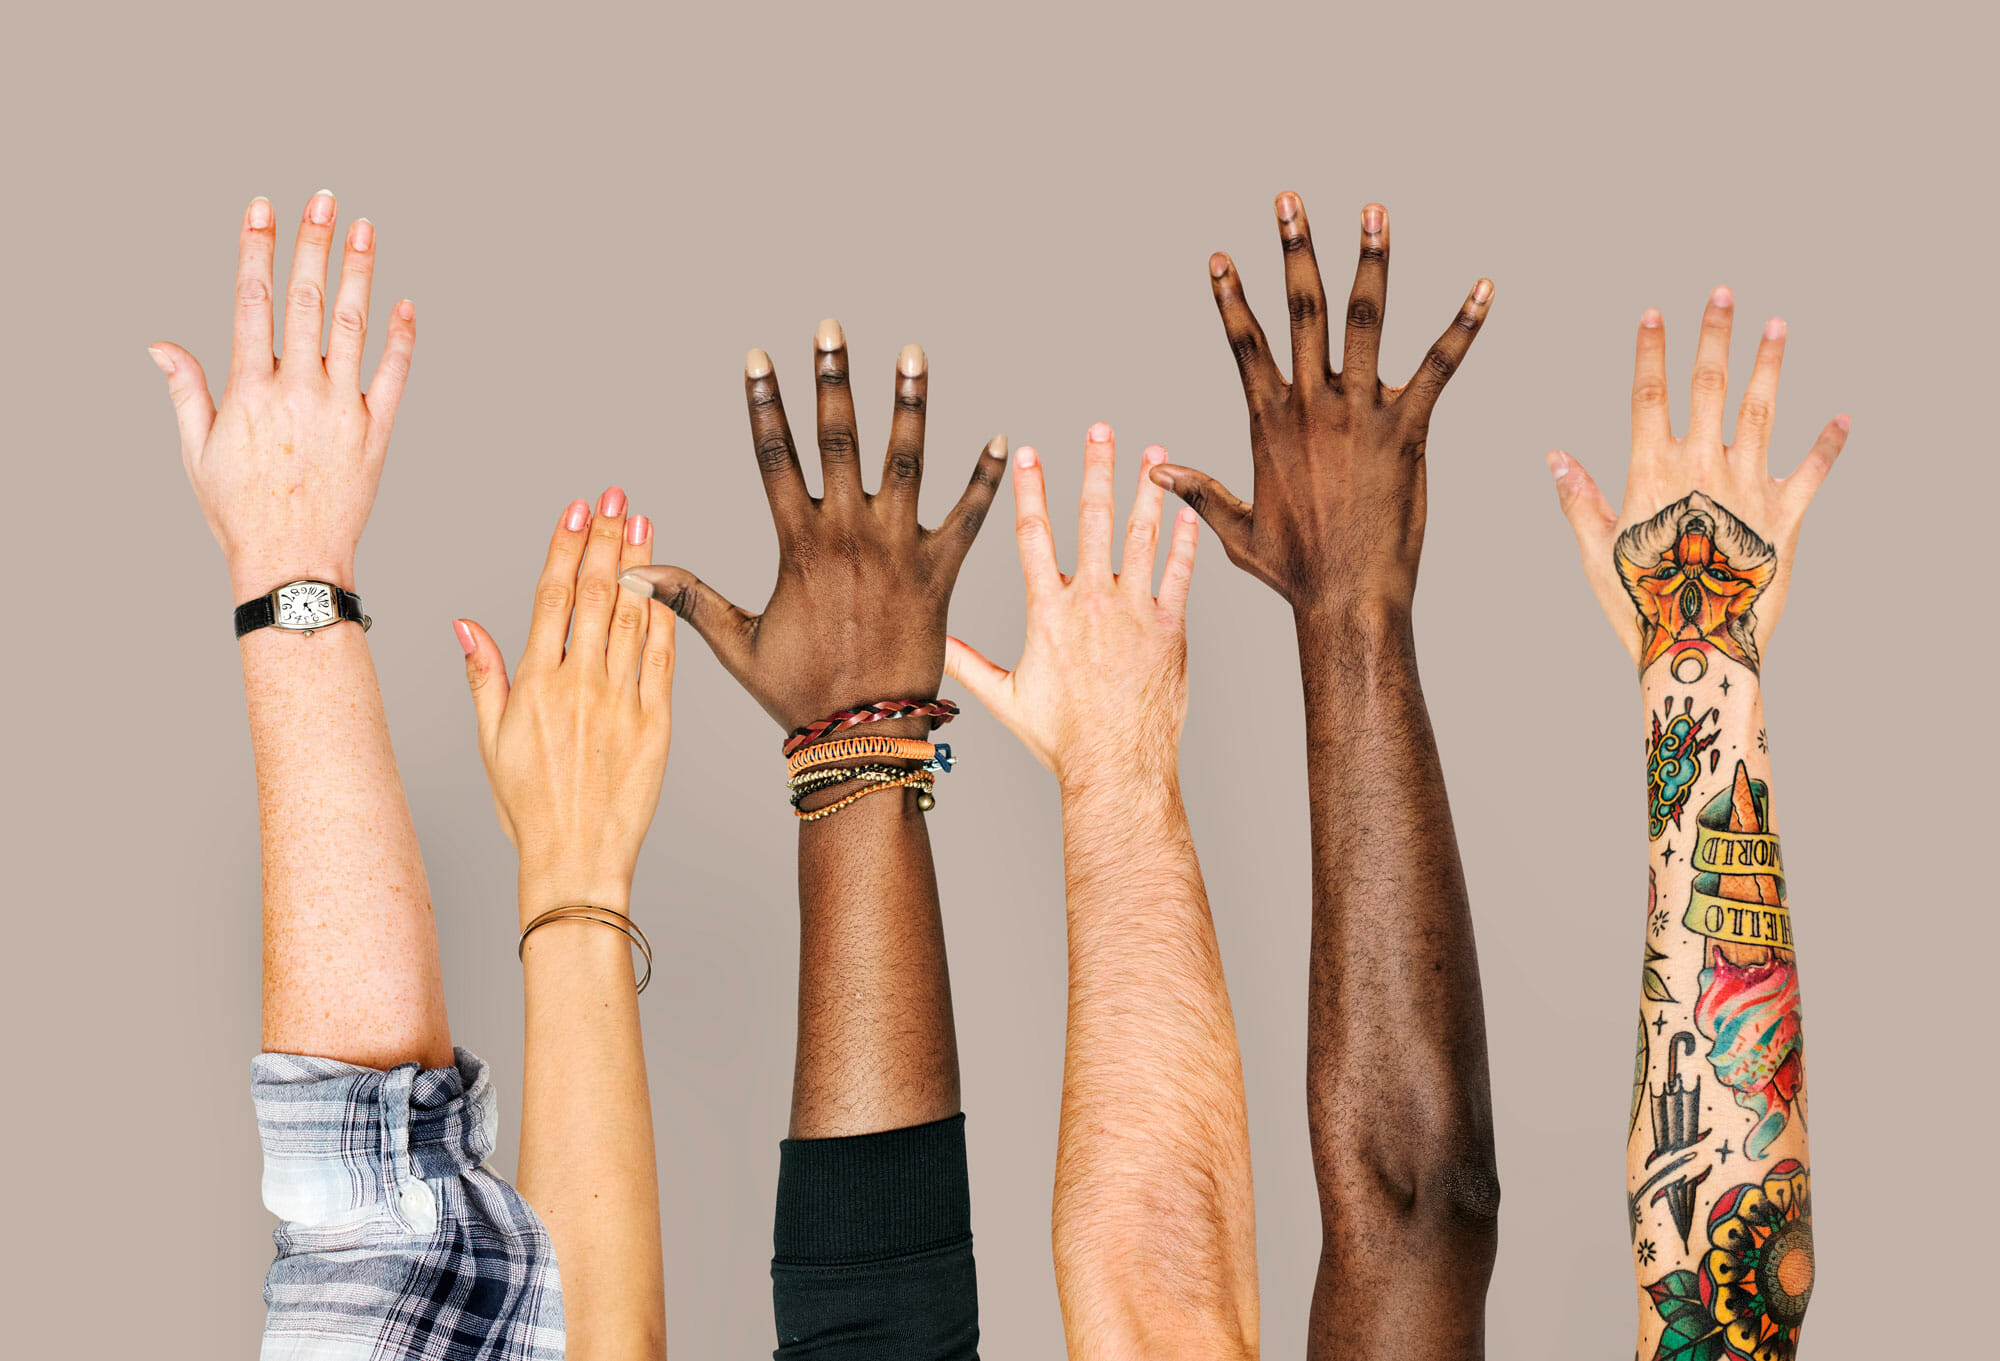 Hands and arms of diverse humans.